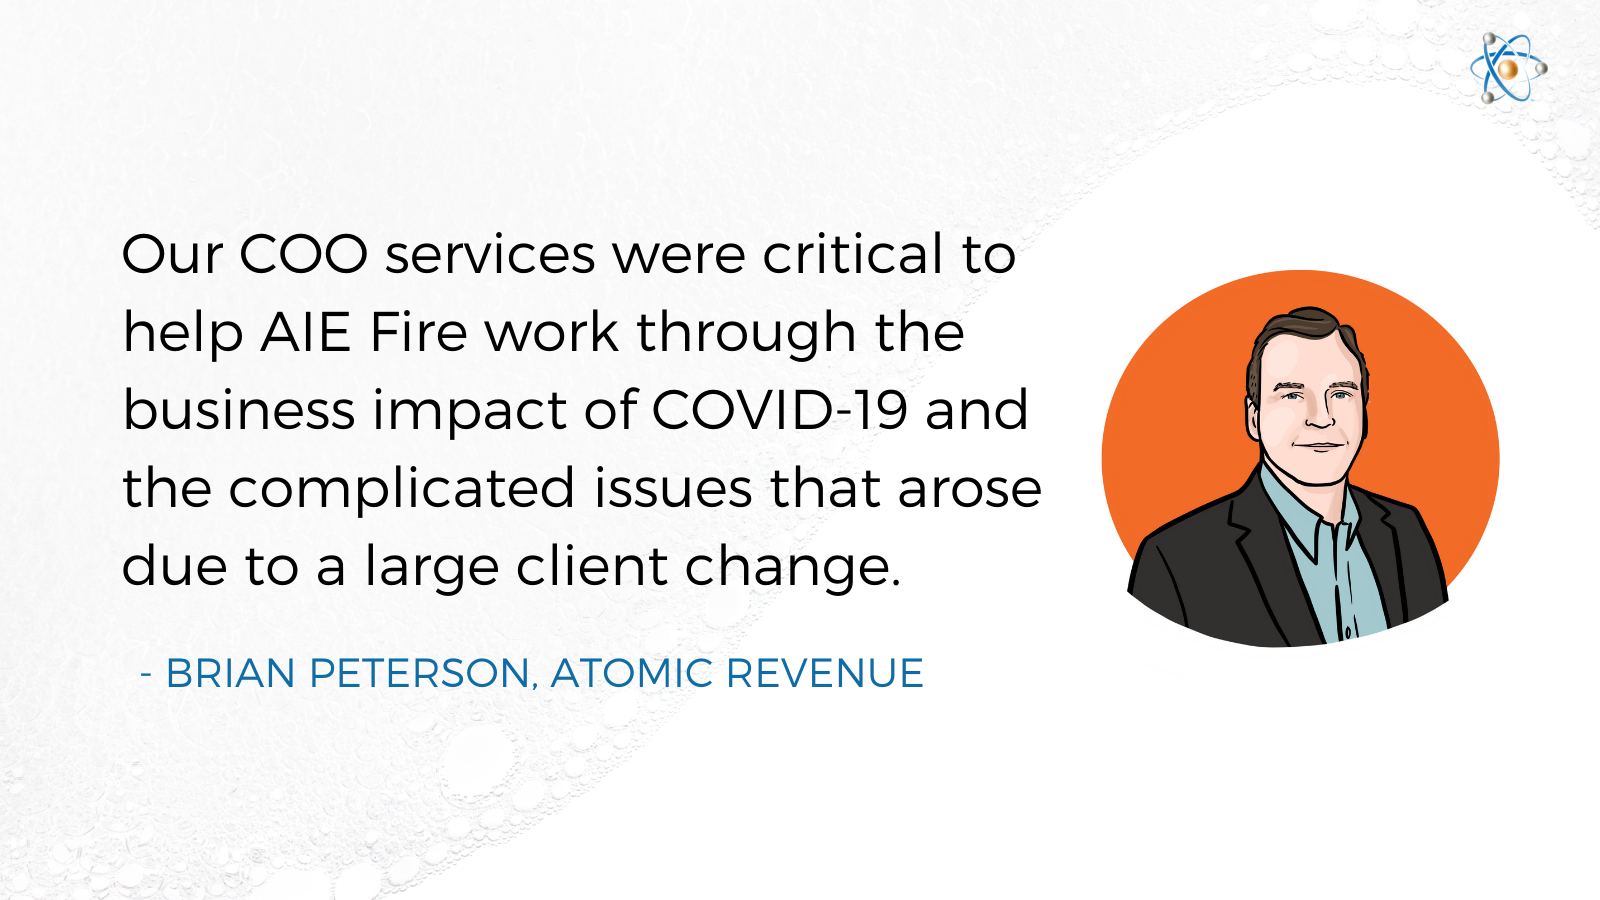 coo services aie fire atomic revenue case study engineering brian peterson